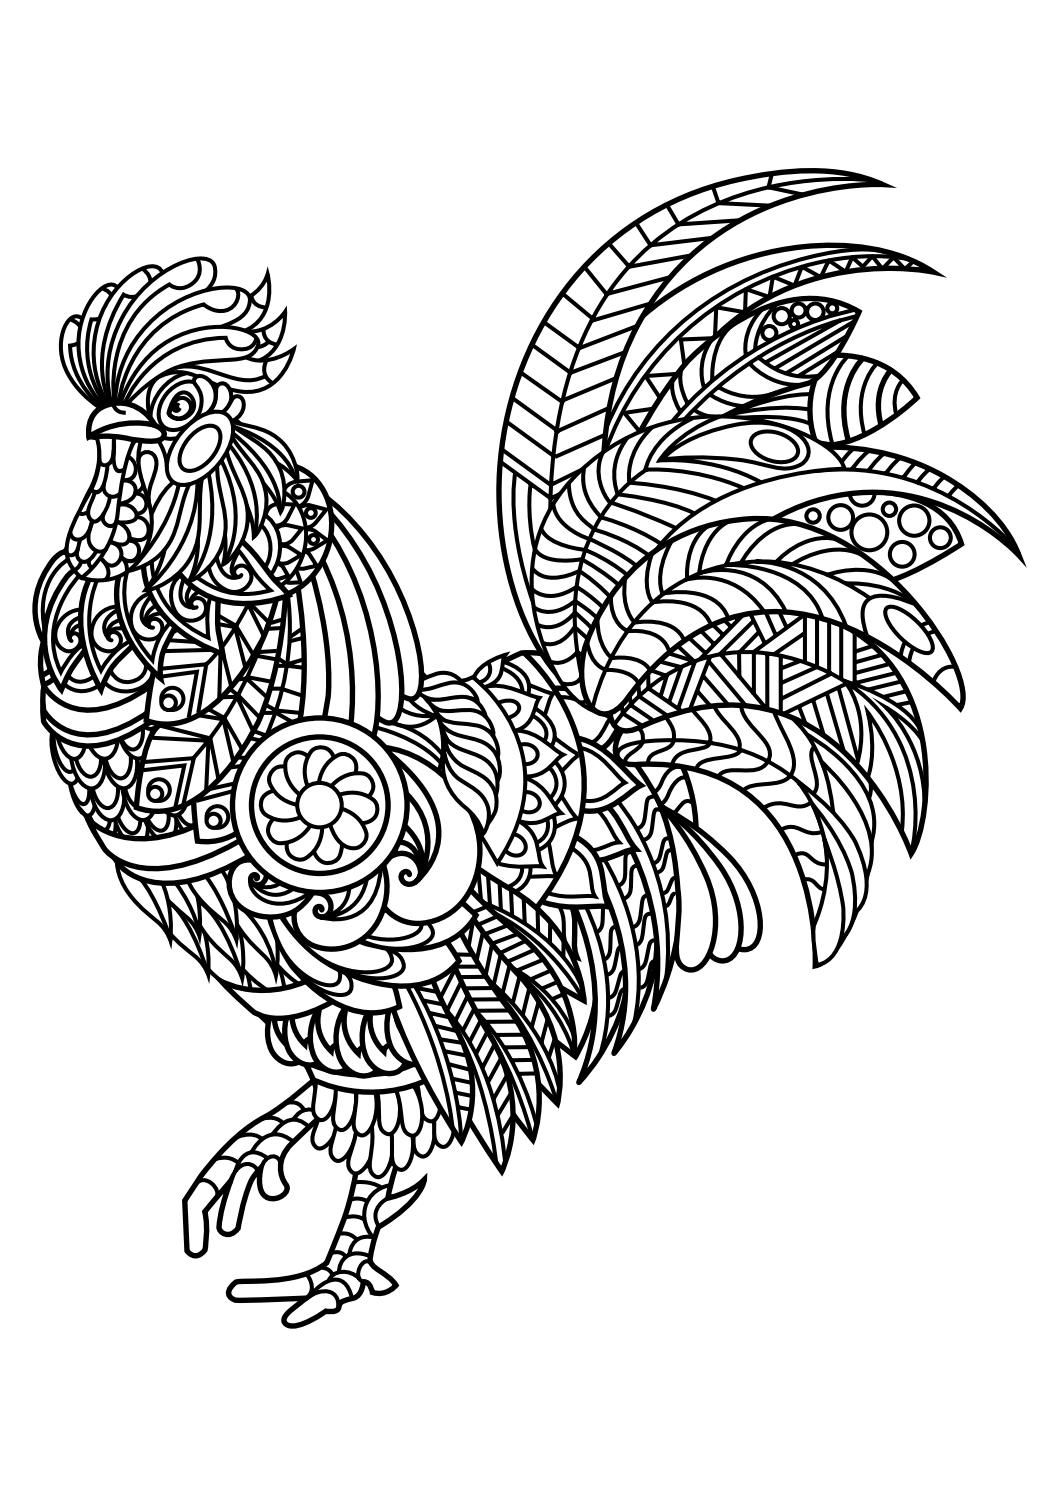 Animal coloring pages pdf (With images) | Animal coloring ... | free printable animal mandala coloring pages for adults